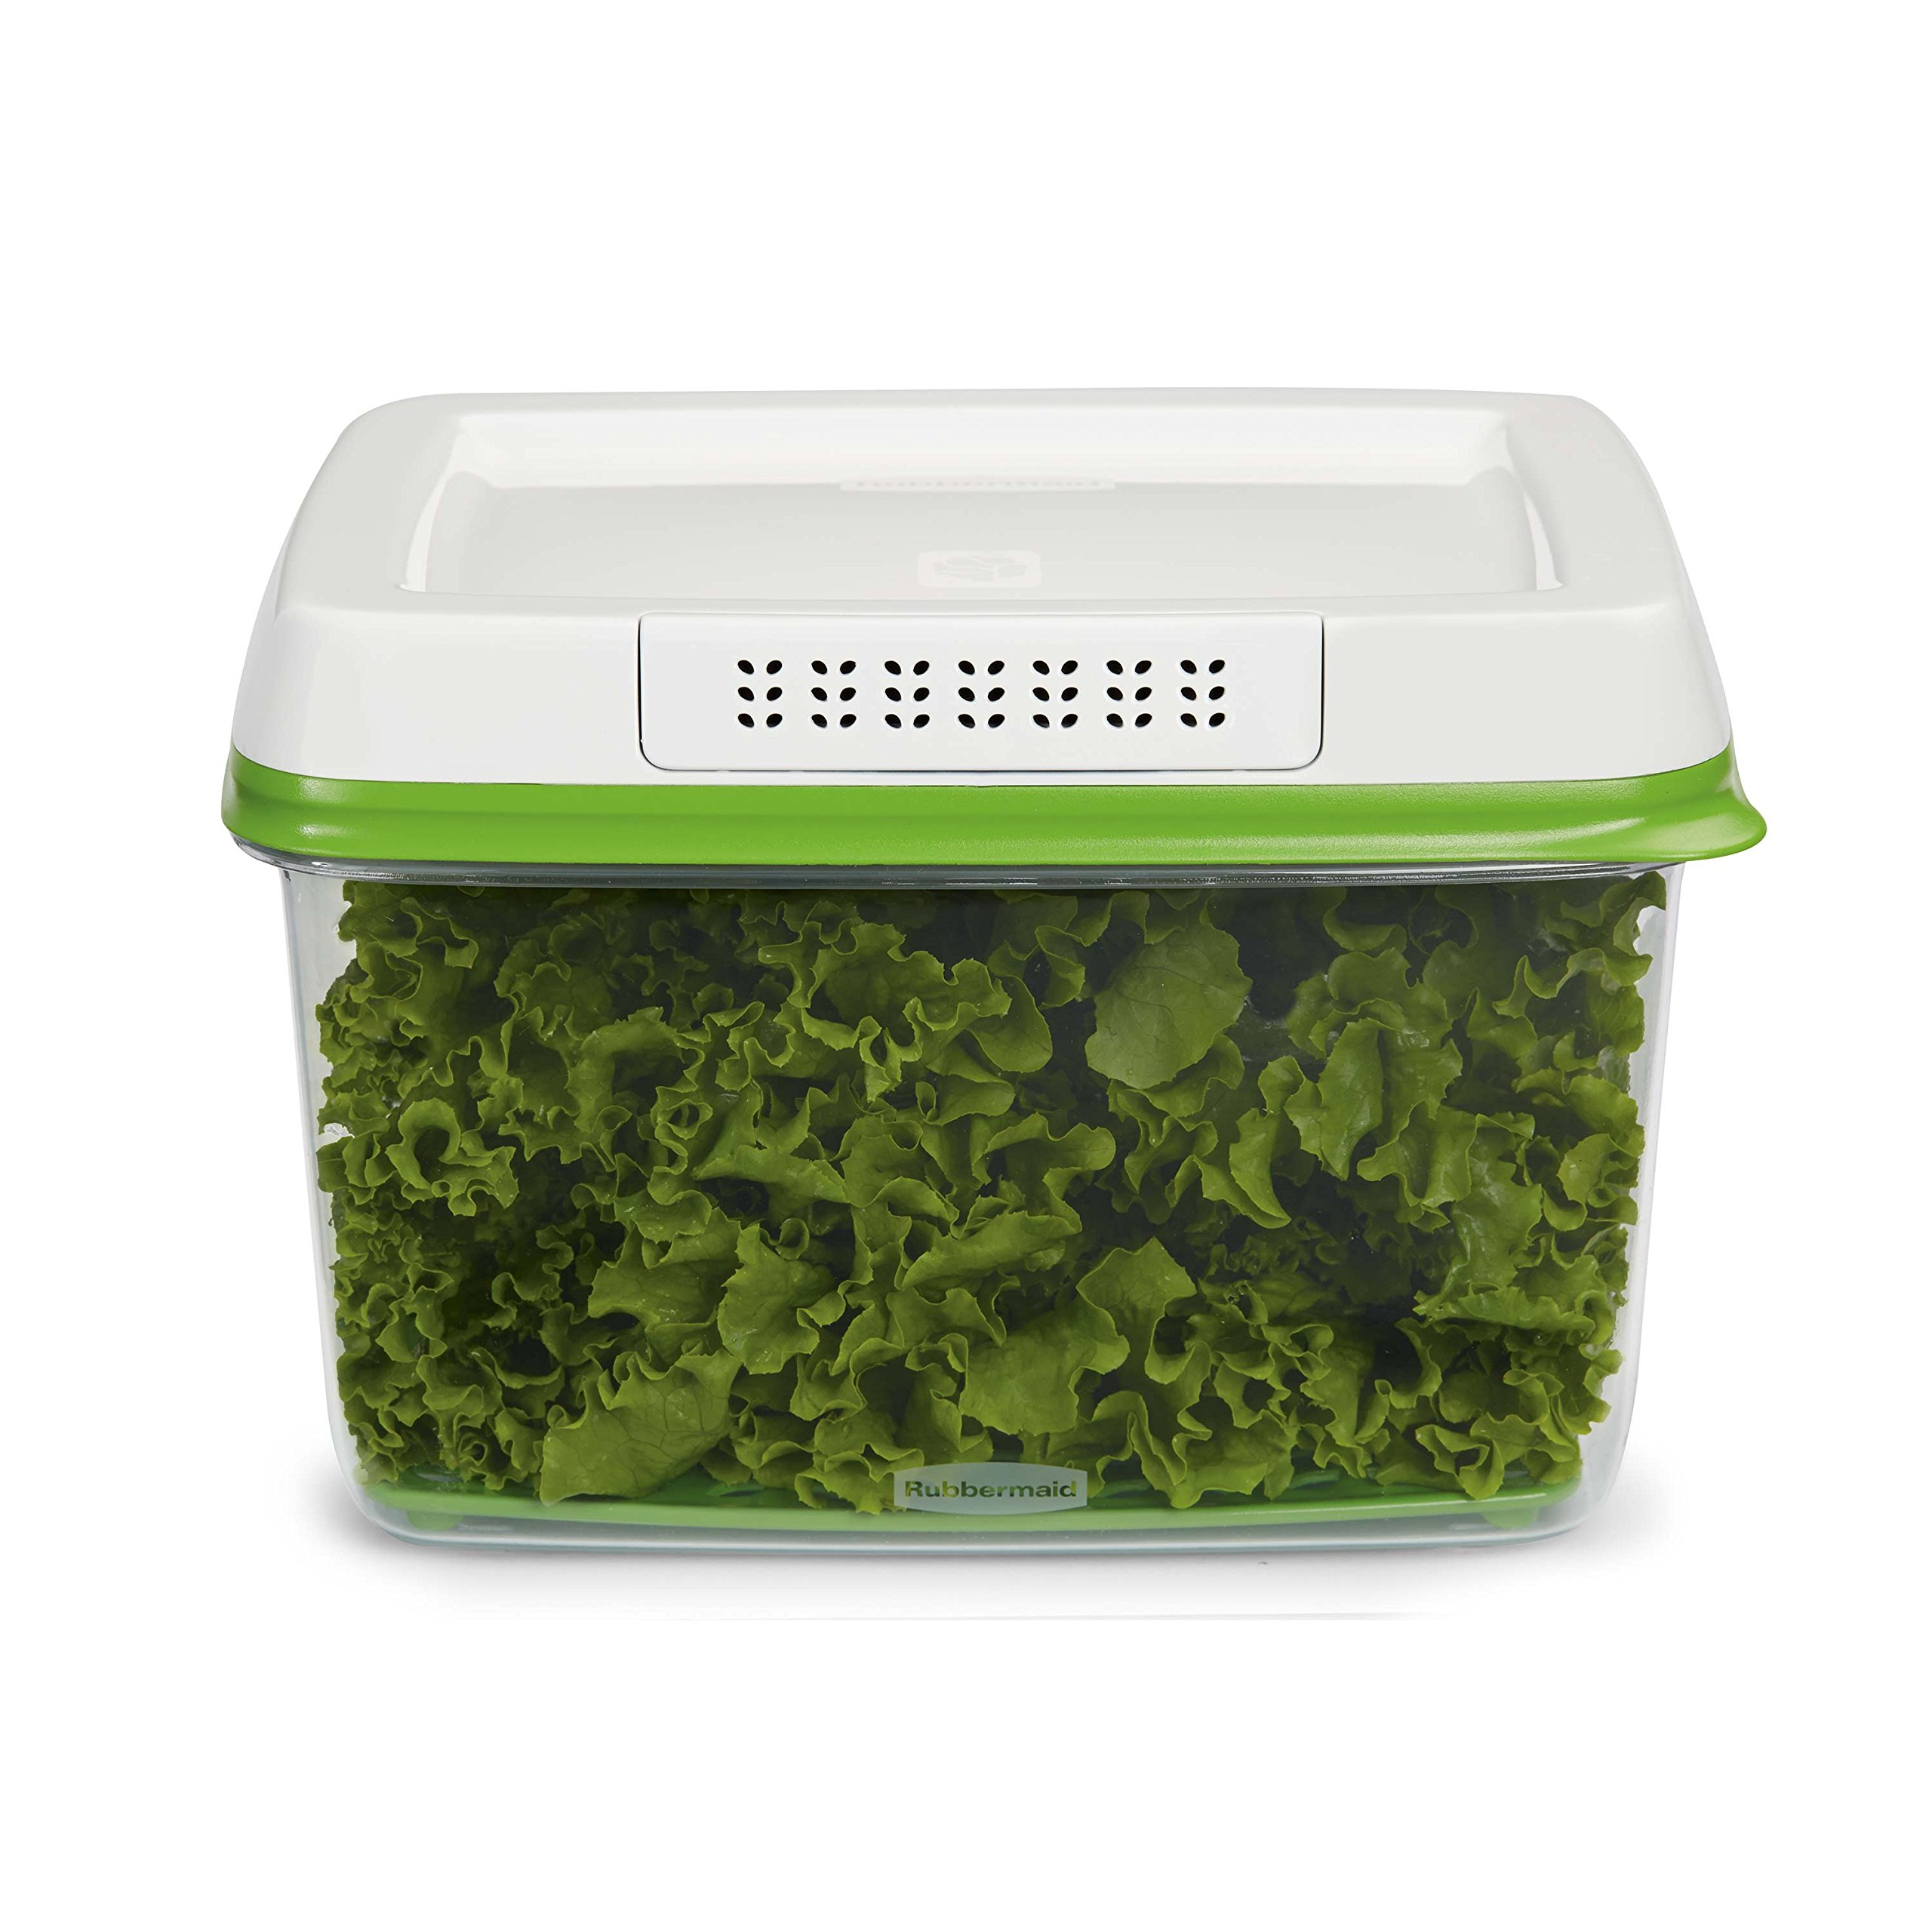 Rubbermaid FreshWorks Produce Saver Food Storage Container, Large, 17.3 Cup, Green 1920479 by Rubbermaid